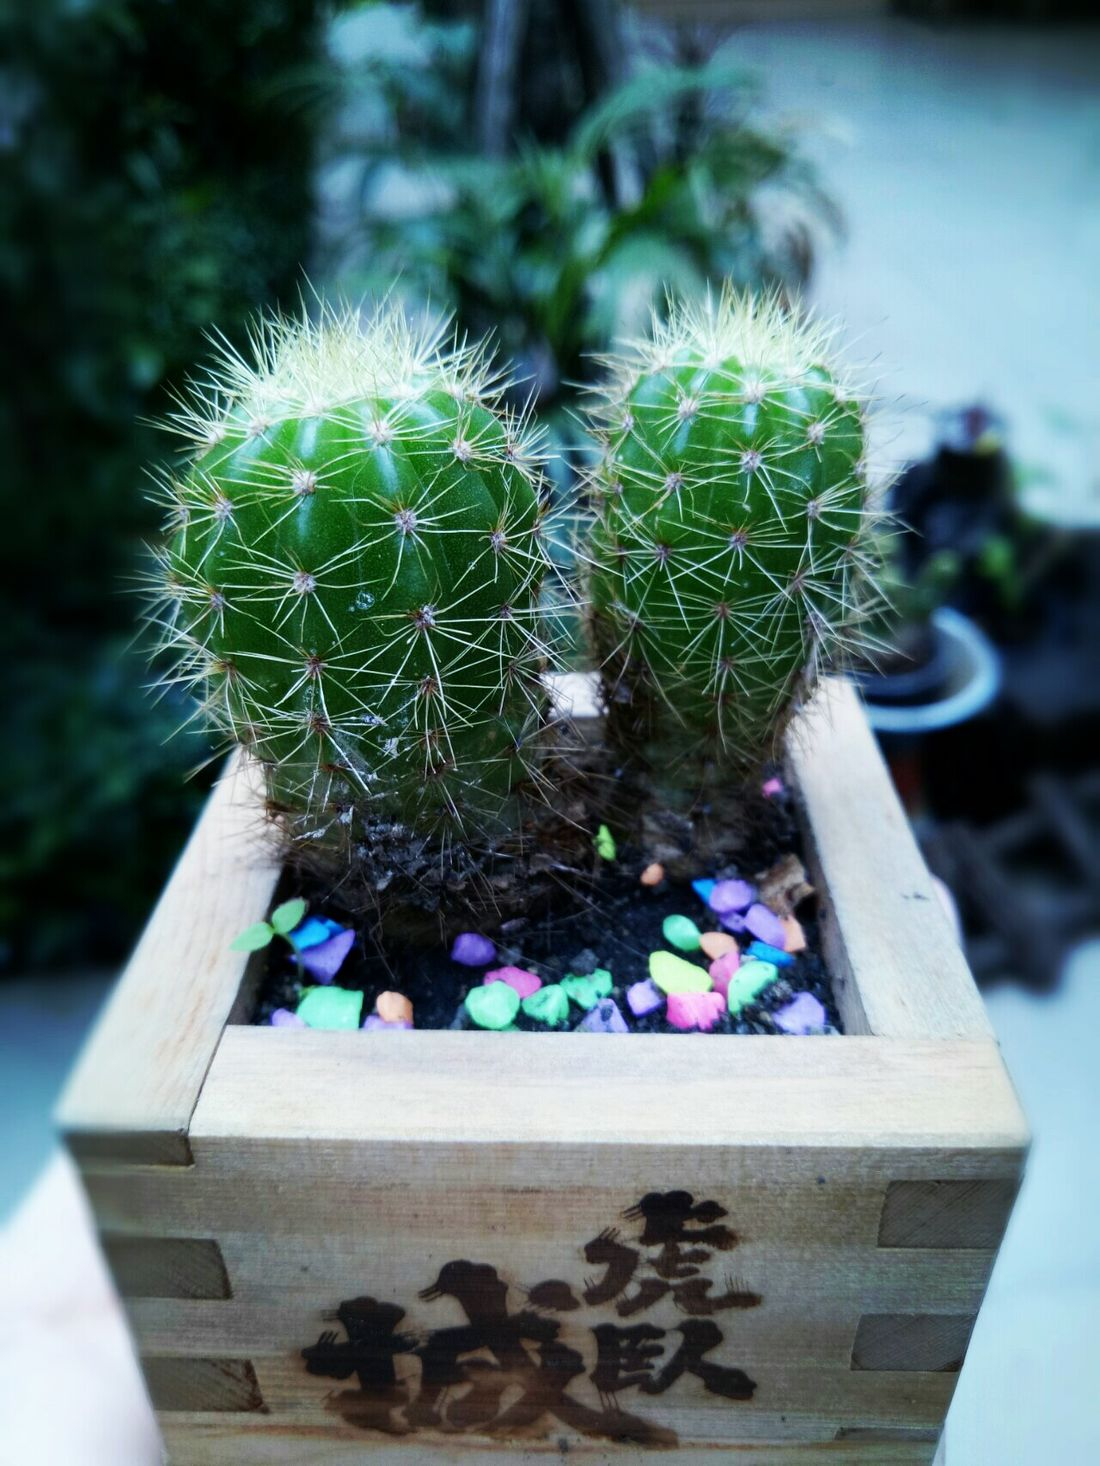 Plant Nature Growth Green Color No People Close-up Fragility DayBeauty In Nature Outdoors Flower Freshness ต้นกระบองเพชร